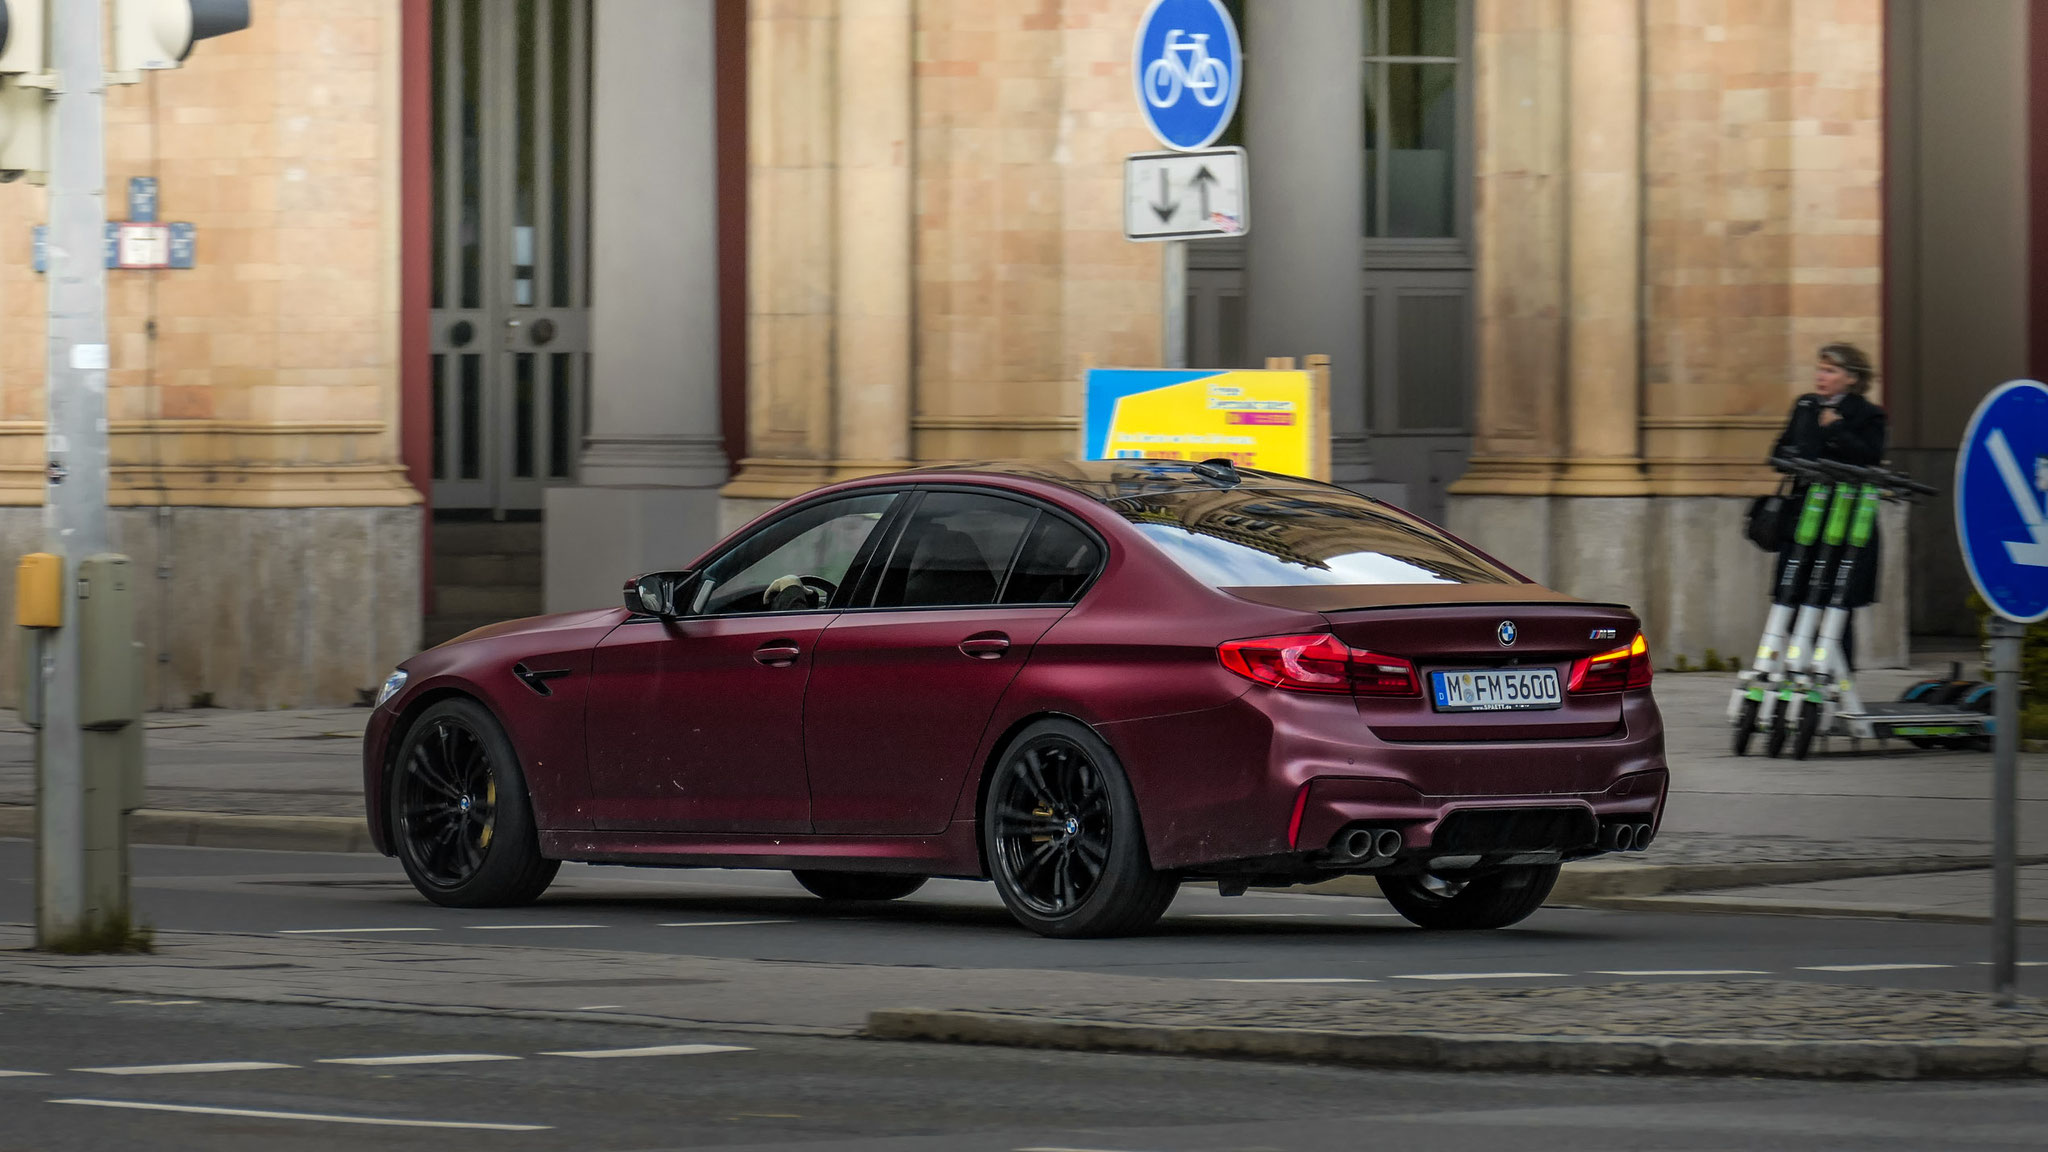 BMW M5 First Edition (1 of 400) - M-FM-5600